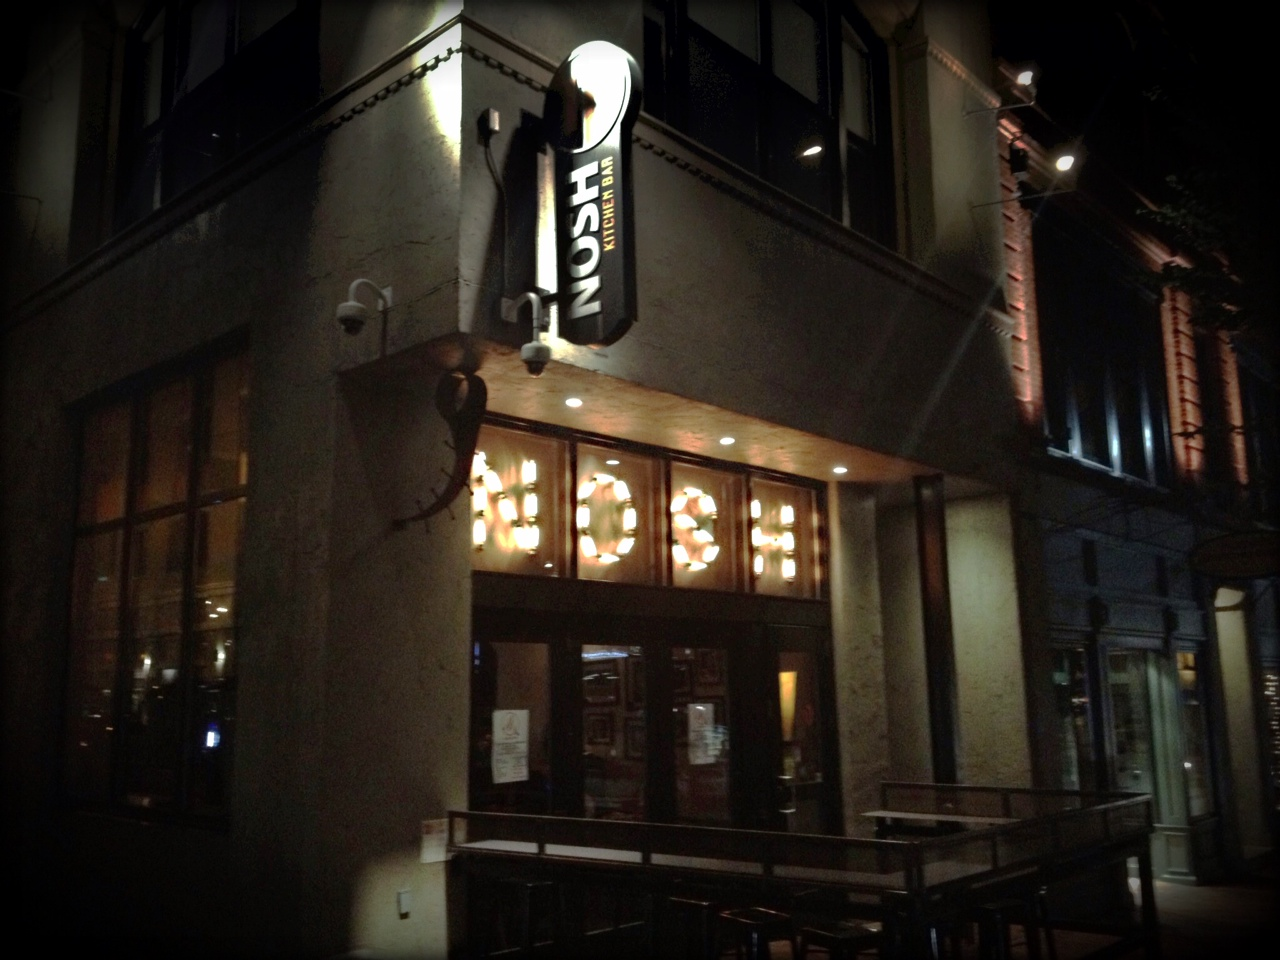 Nosh sign in its night time glory.